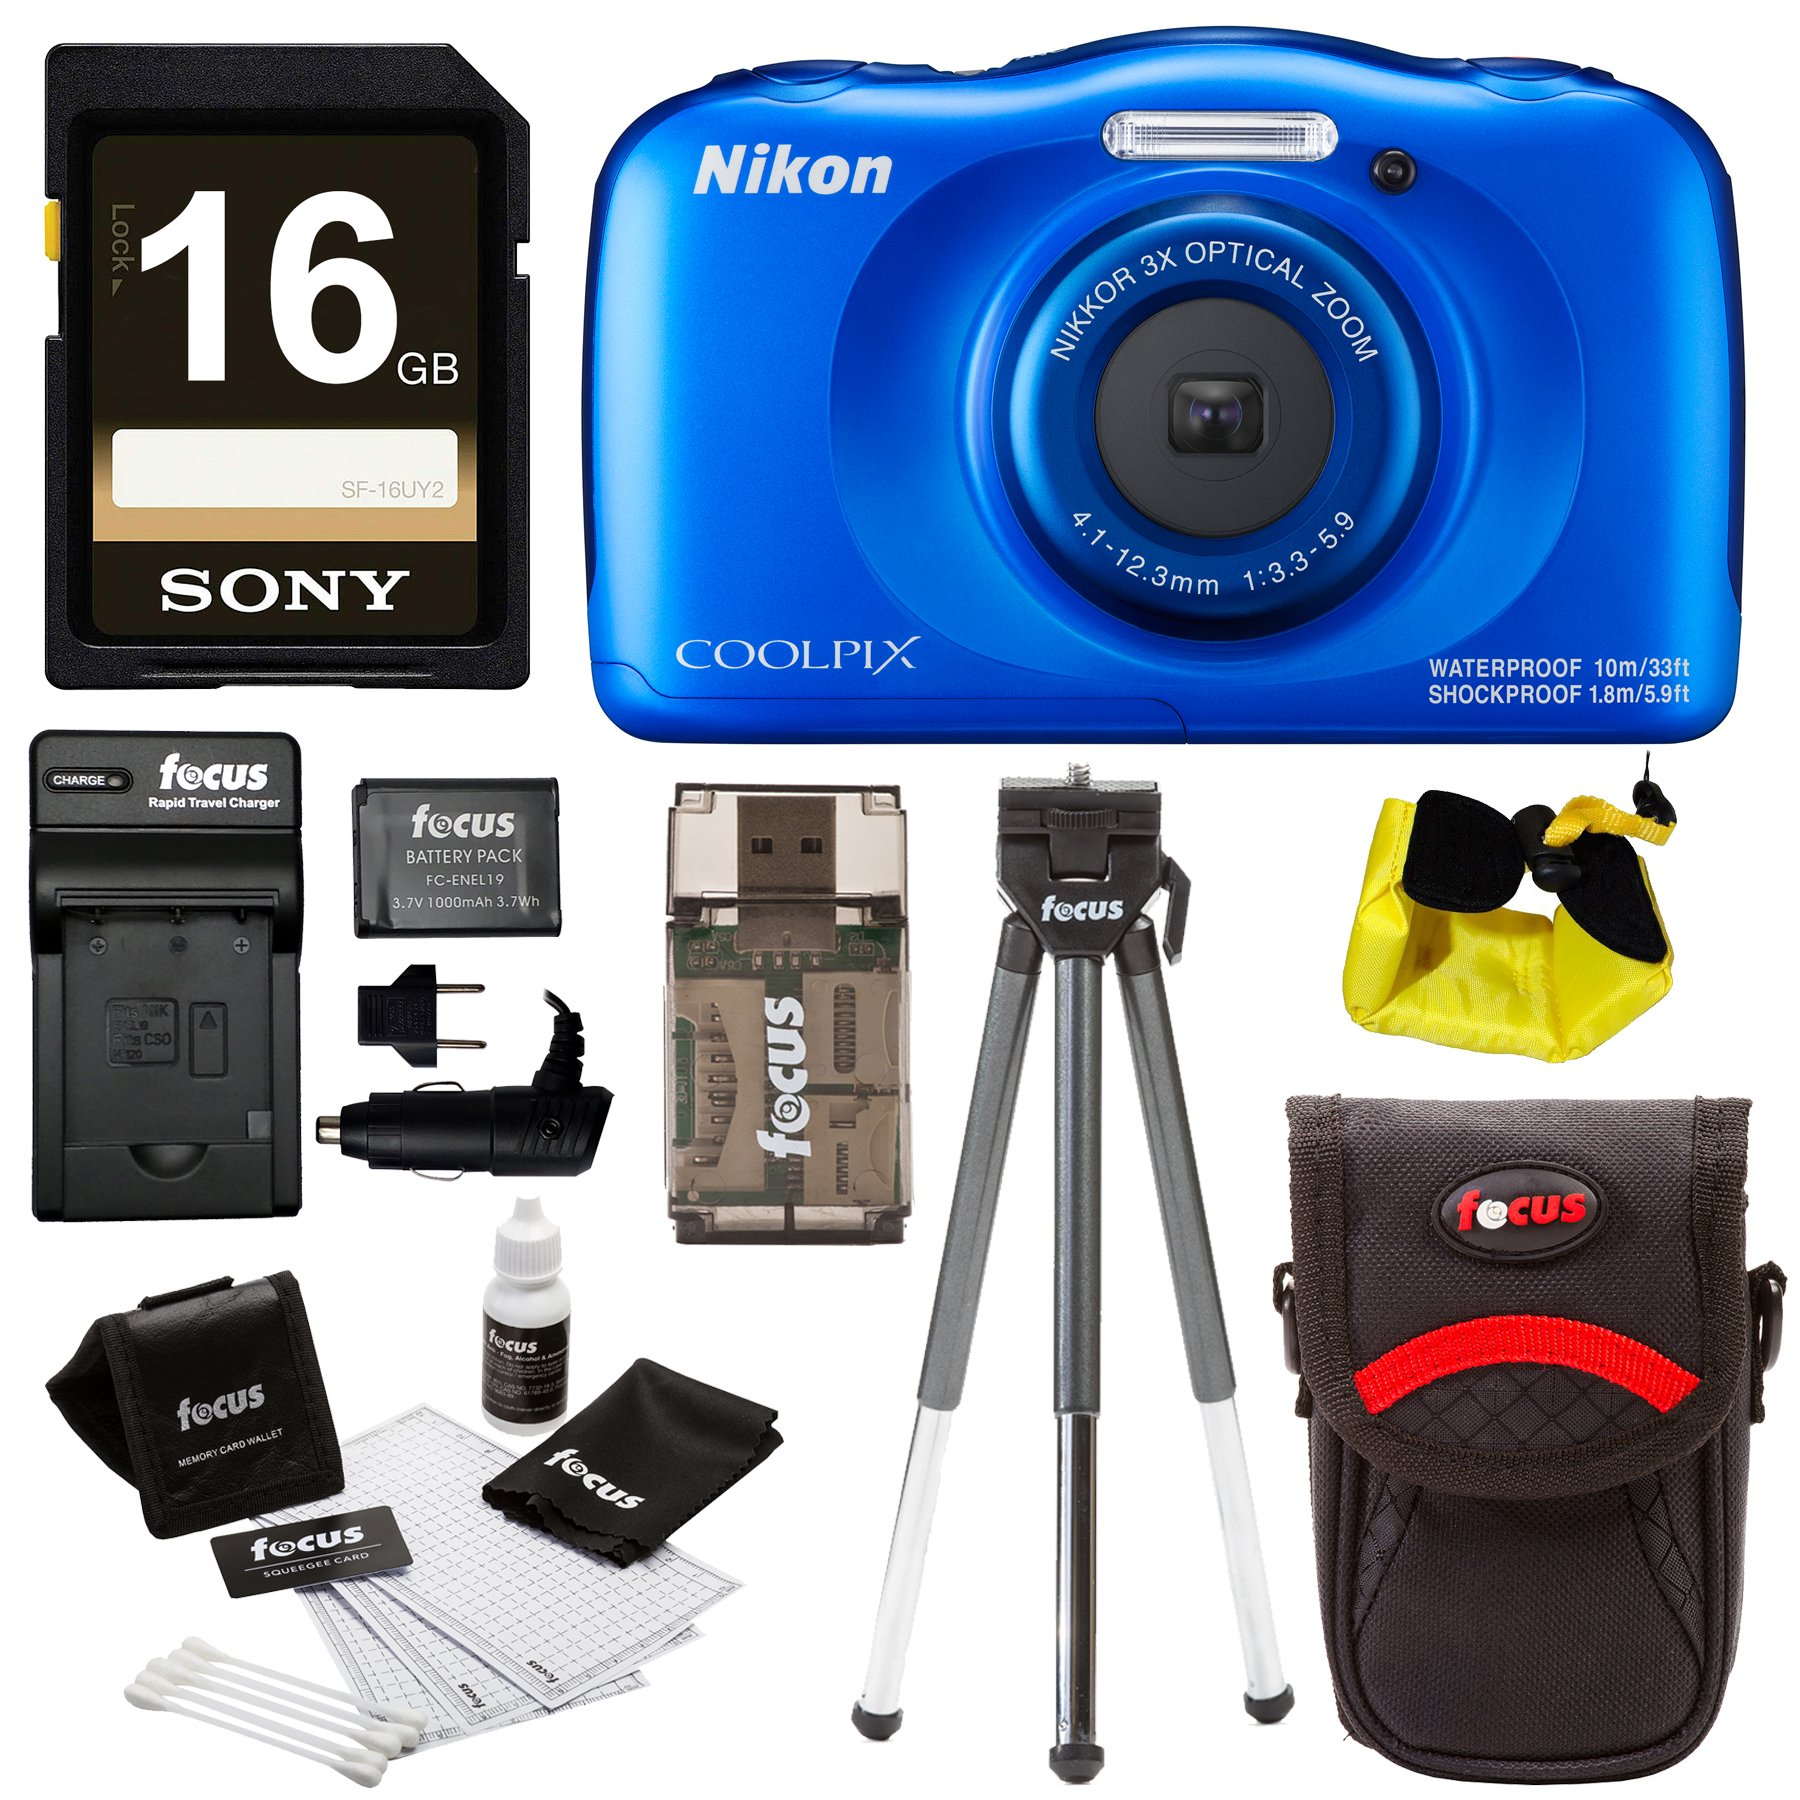 Nikon Coolpix W100 Waterproof Digital Camera (Blue) with 16GB Card + Battery with Charger + Strap and Bundle by Focus Camera